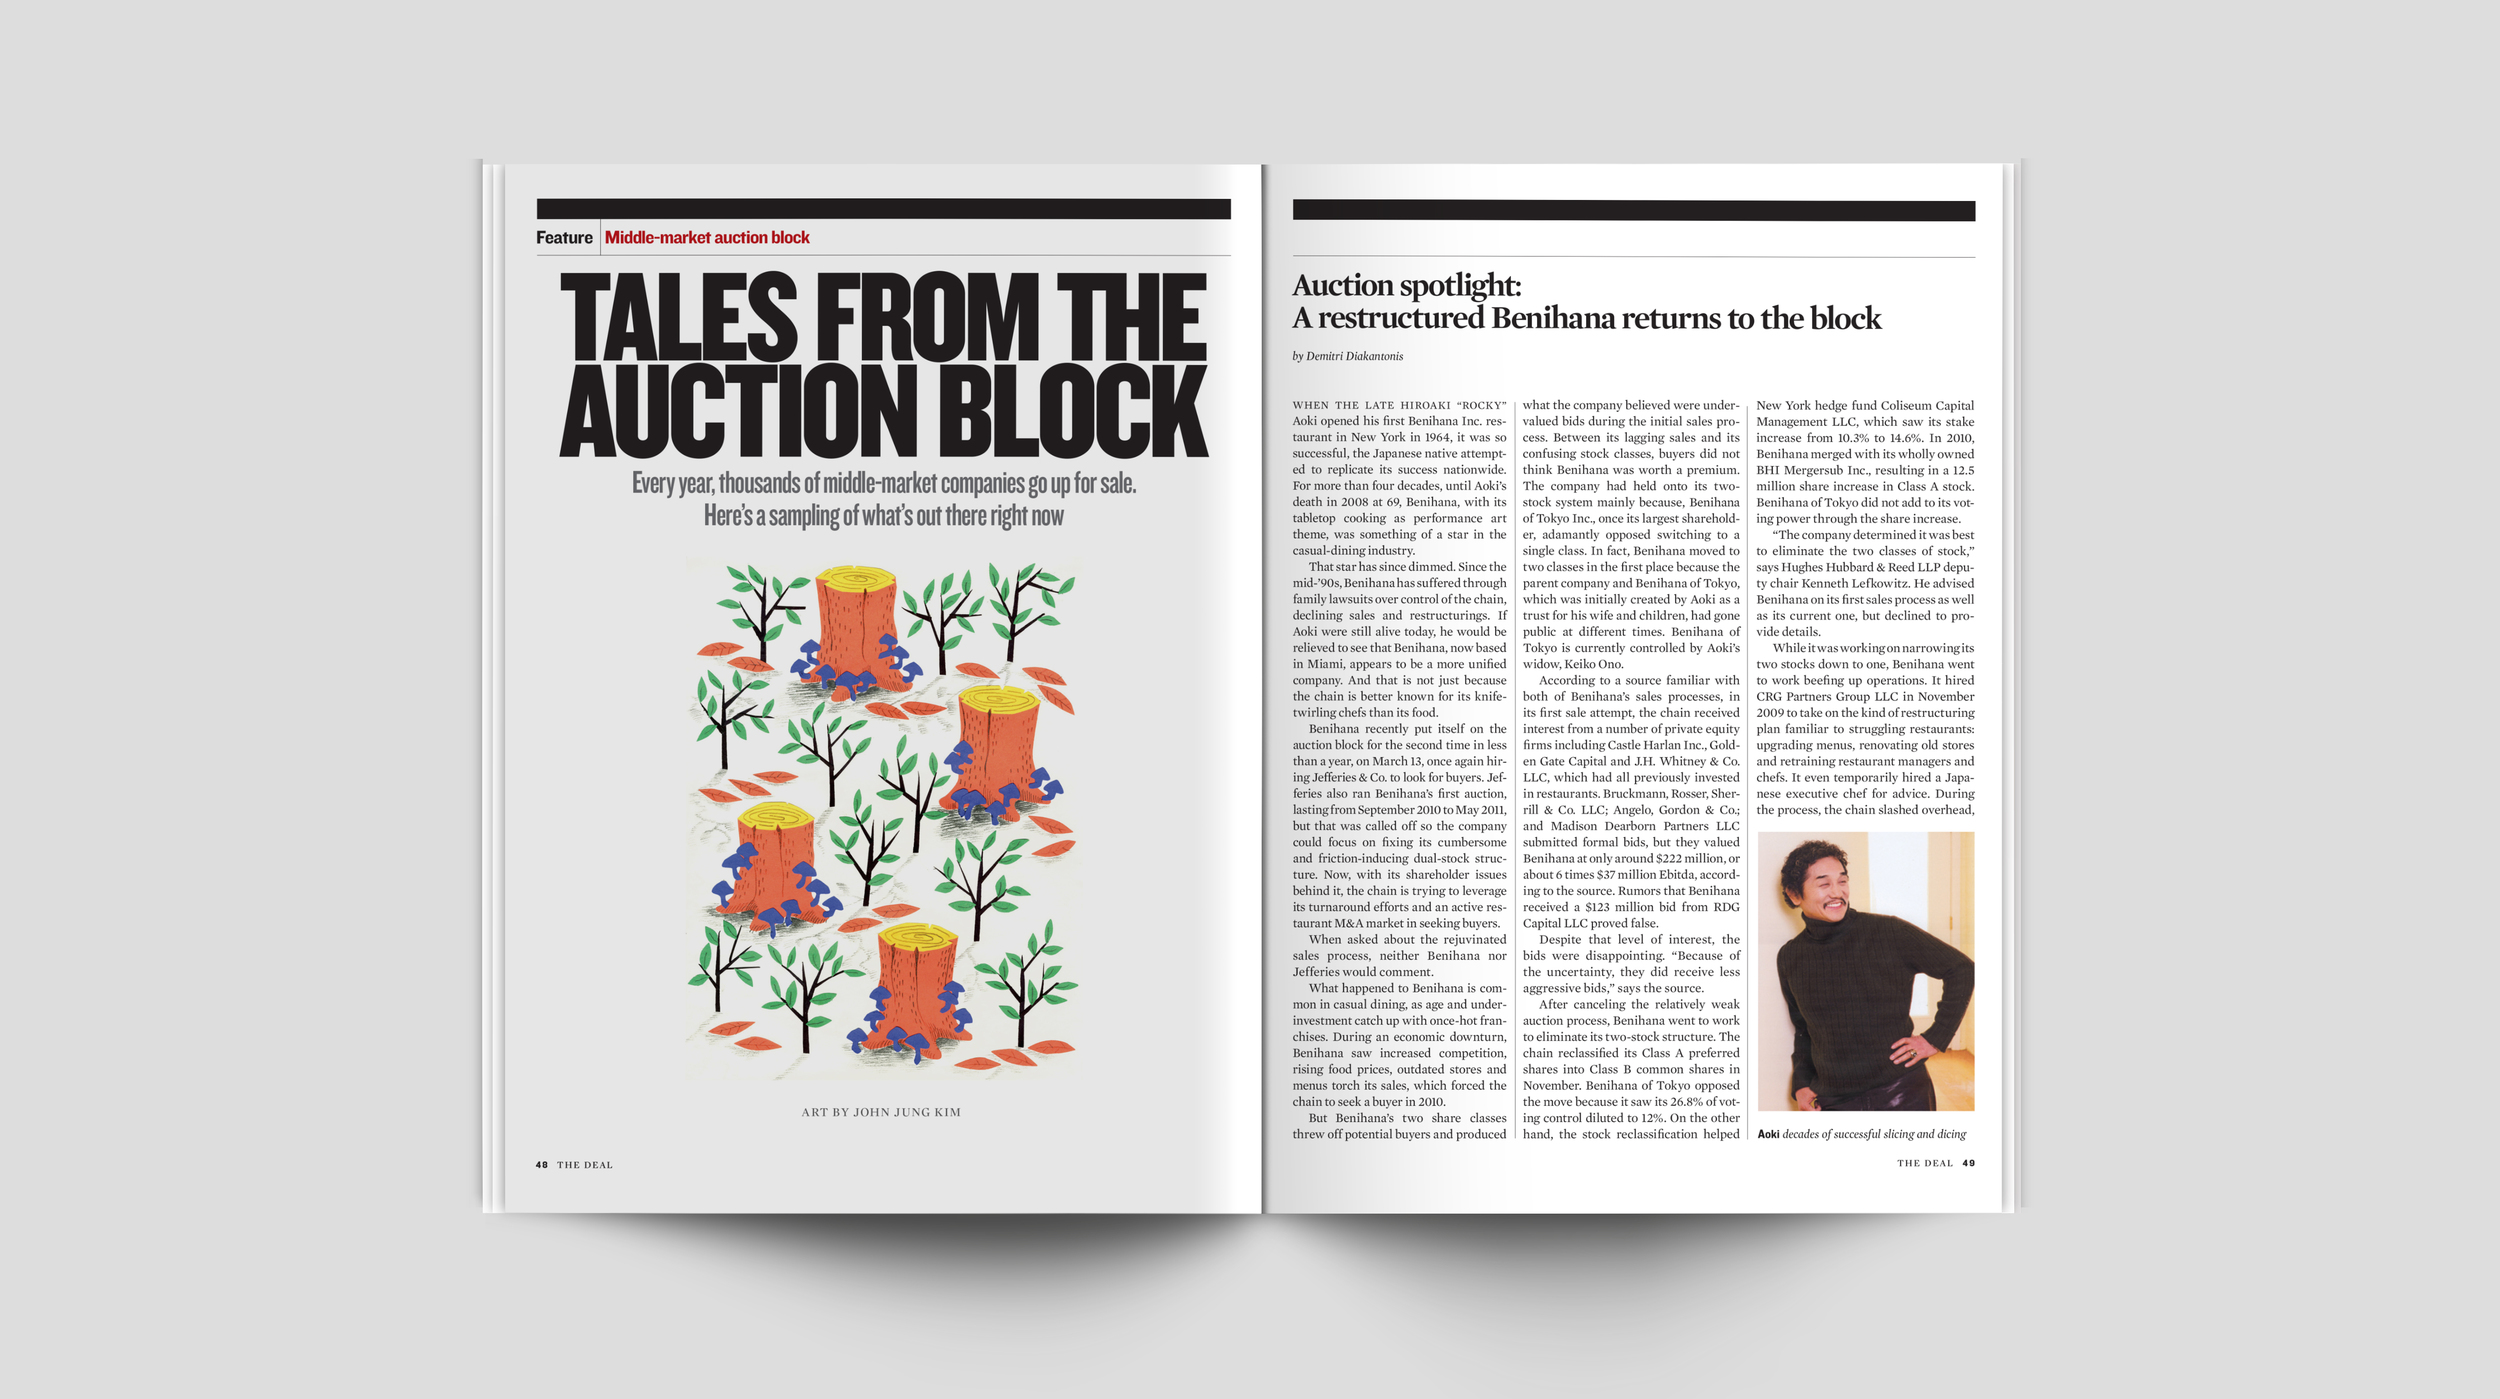 Tales from the Auction Block  Editorial Illustration